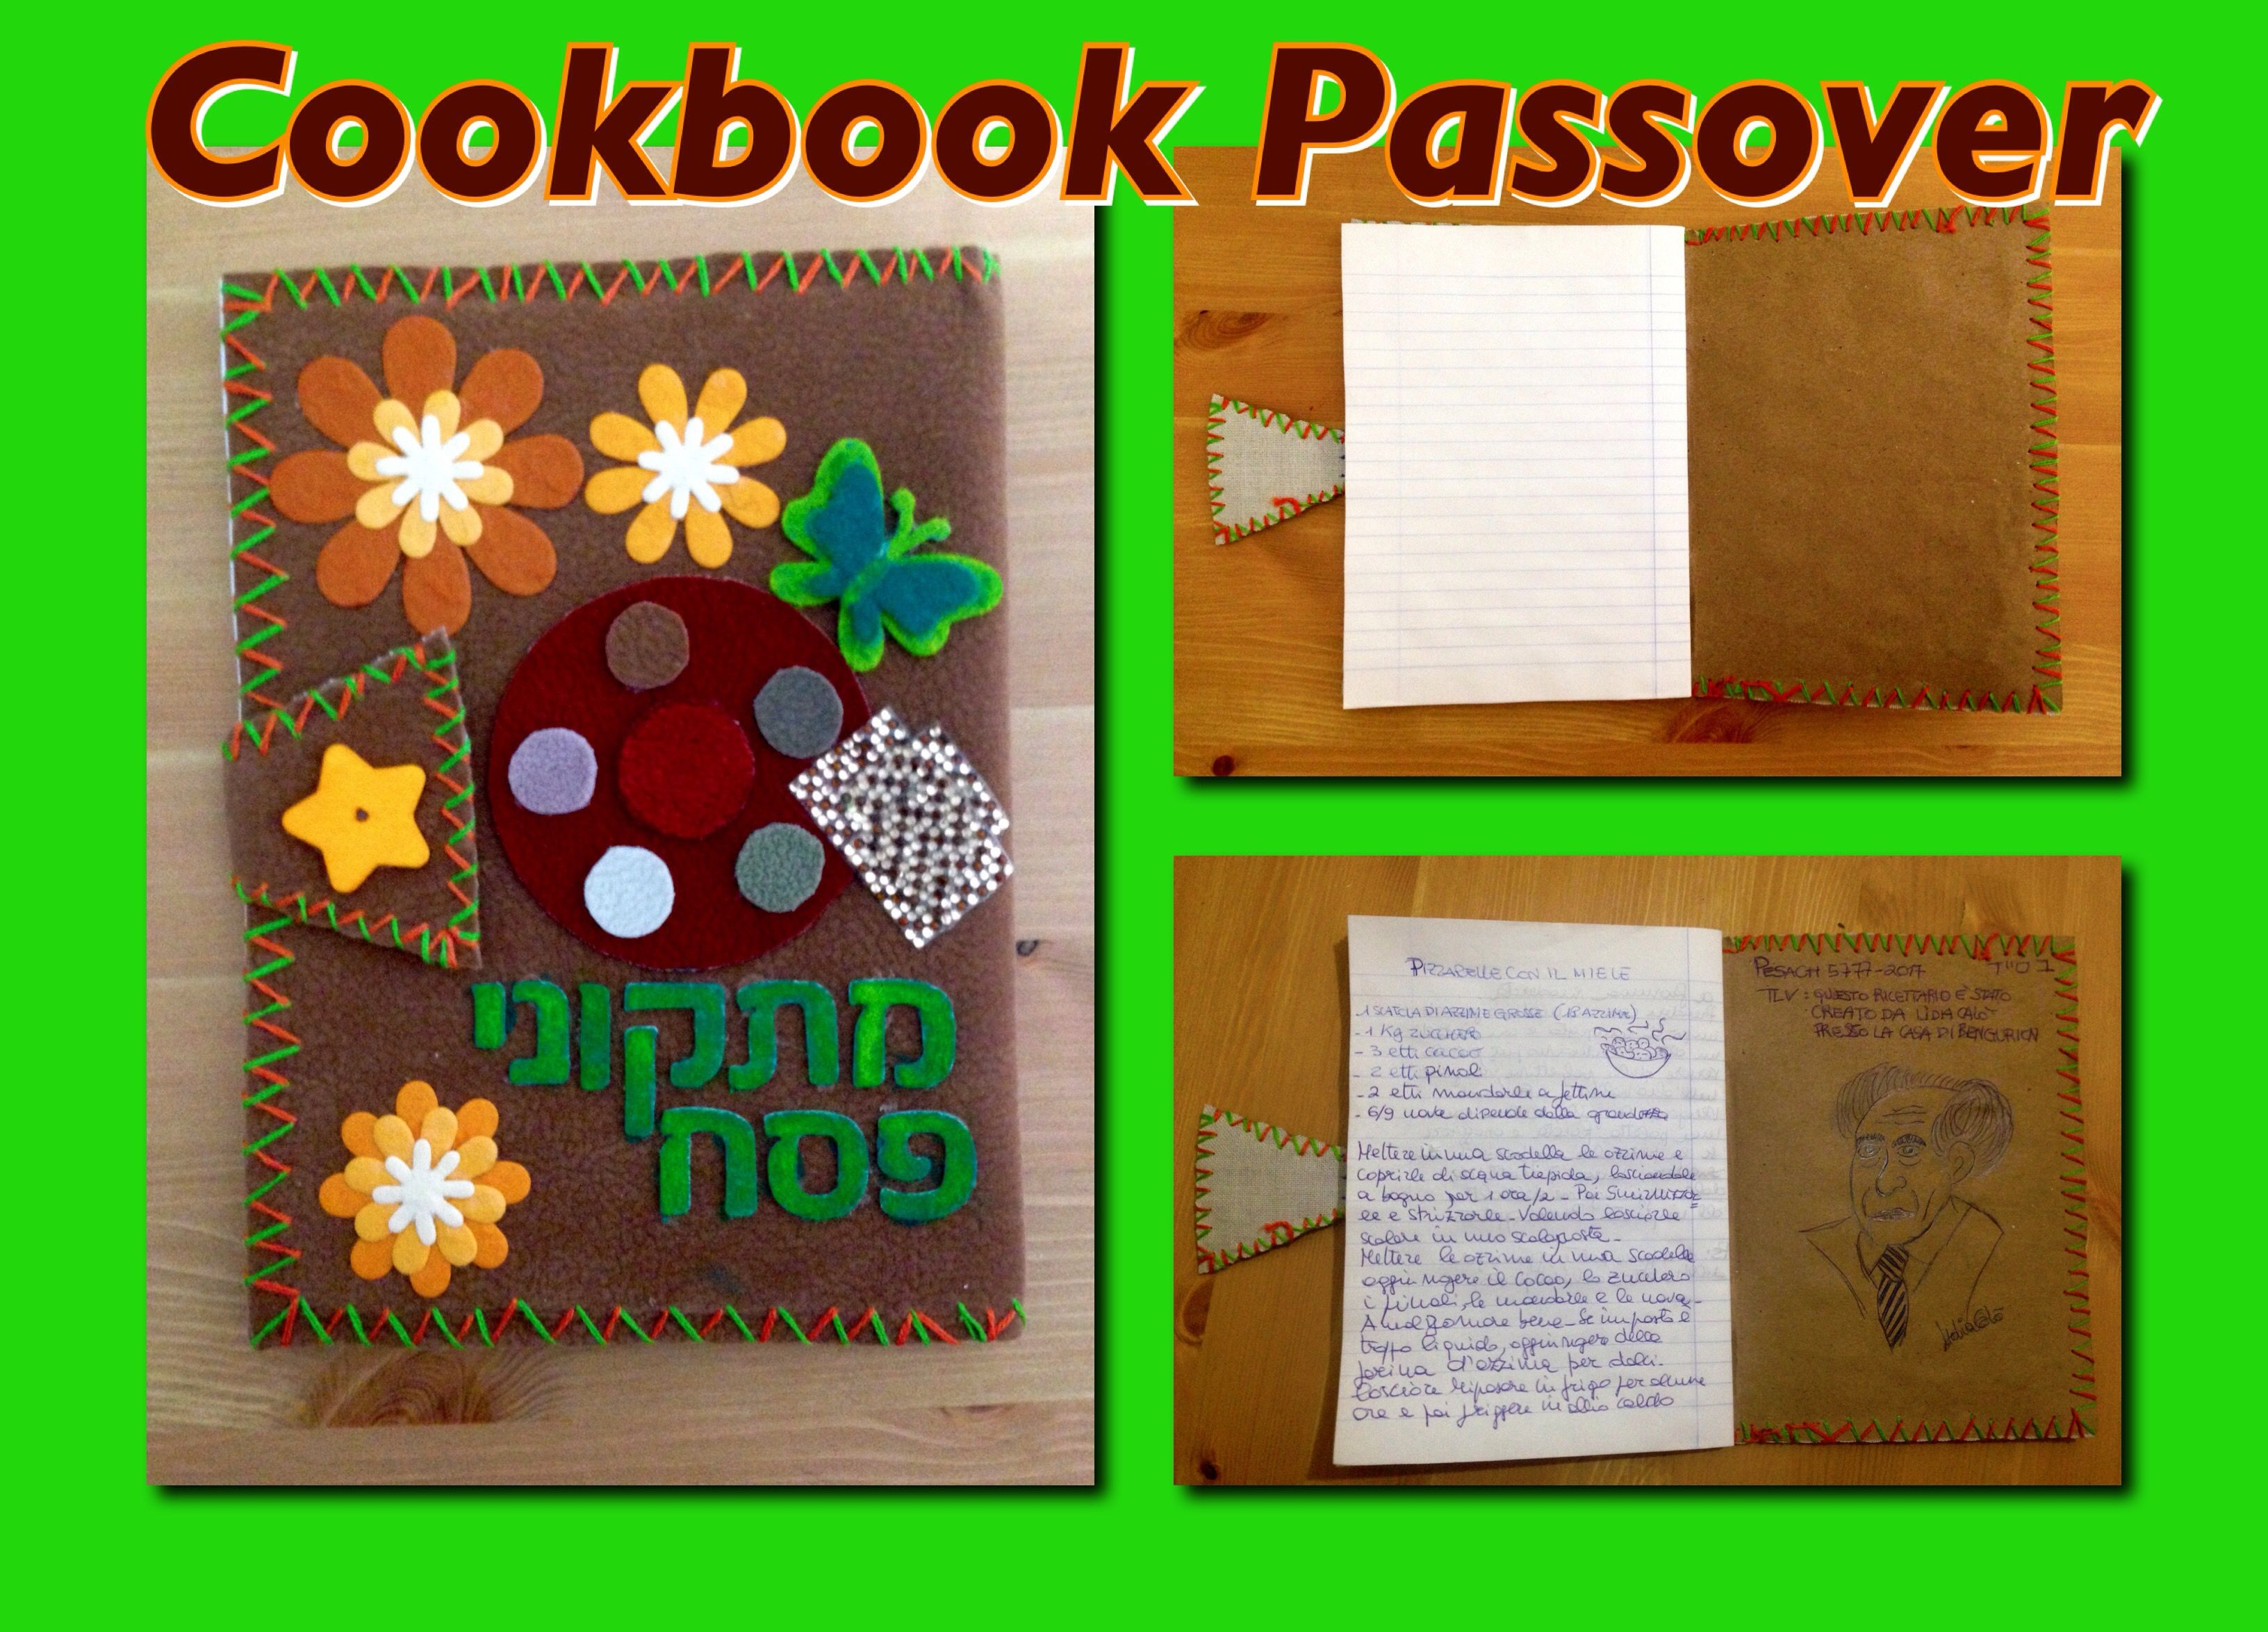 Cookbook Passover